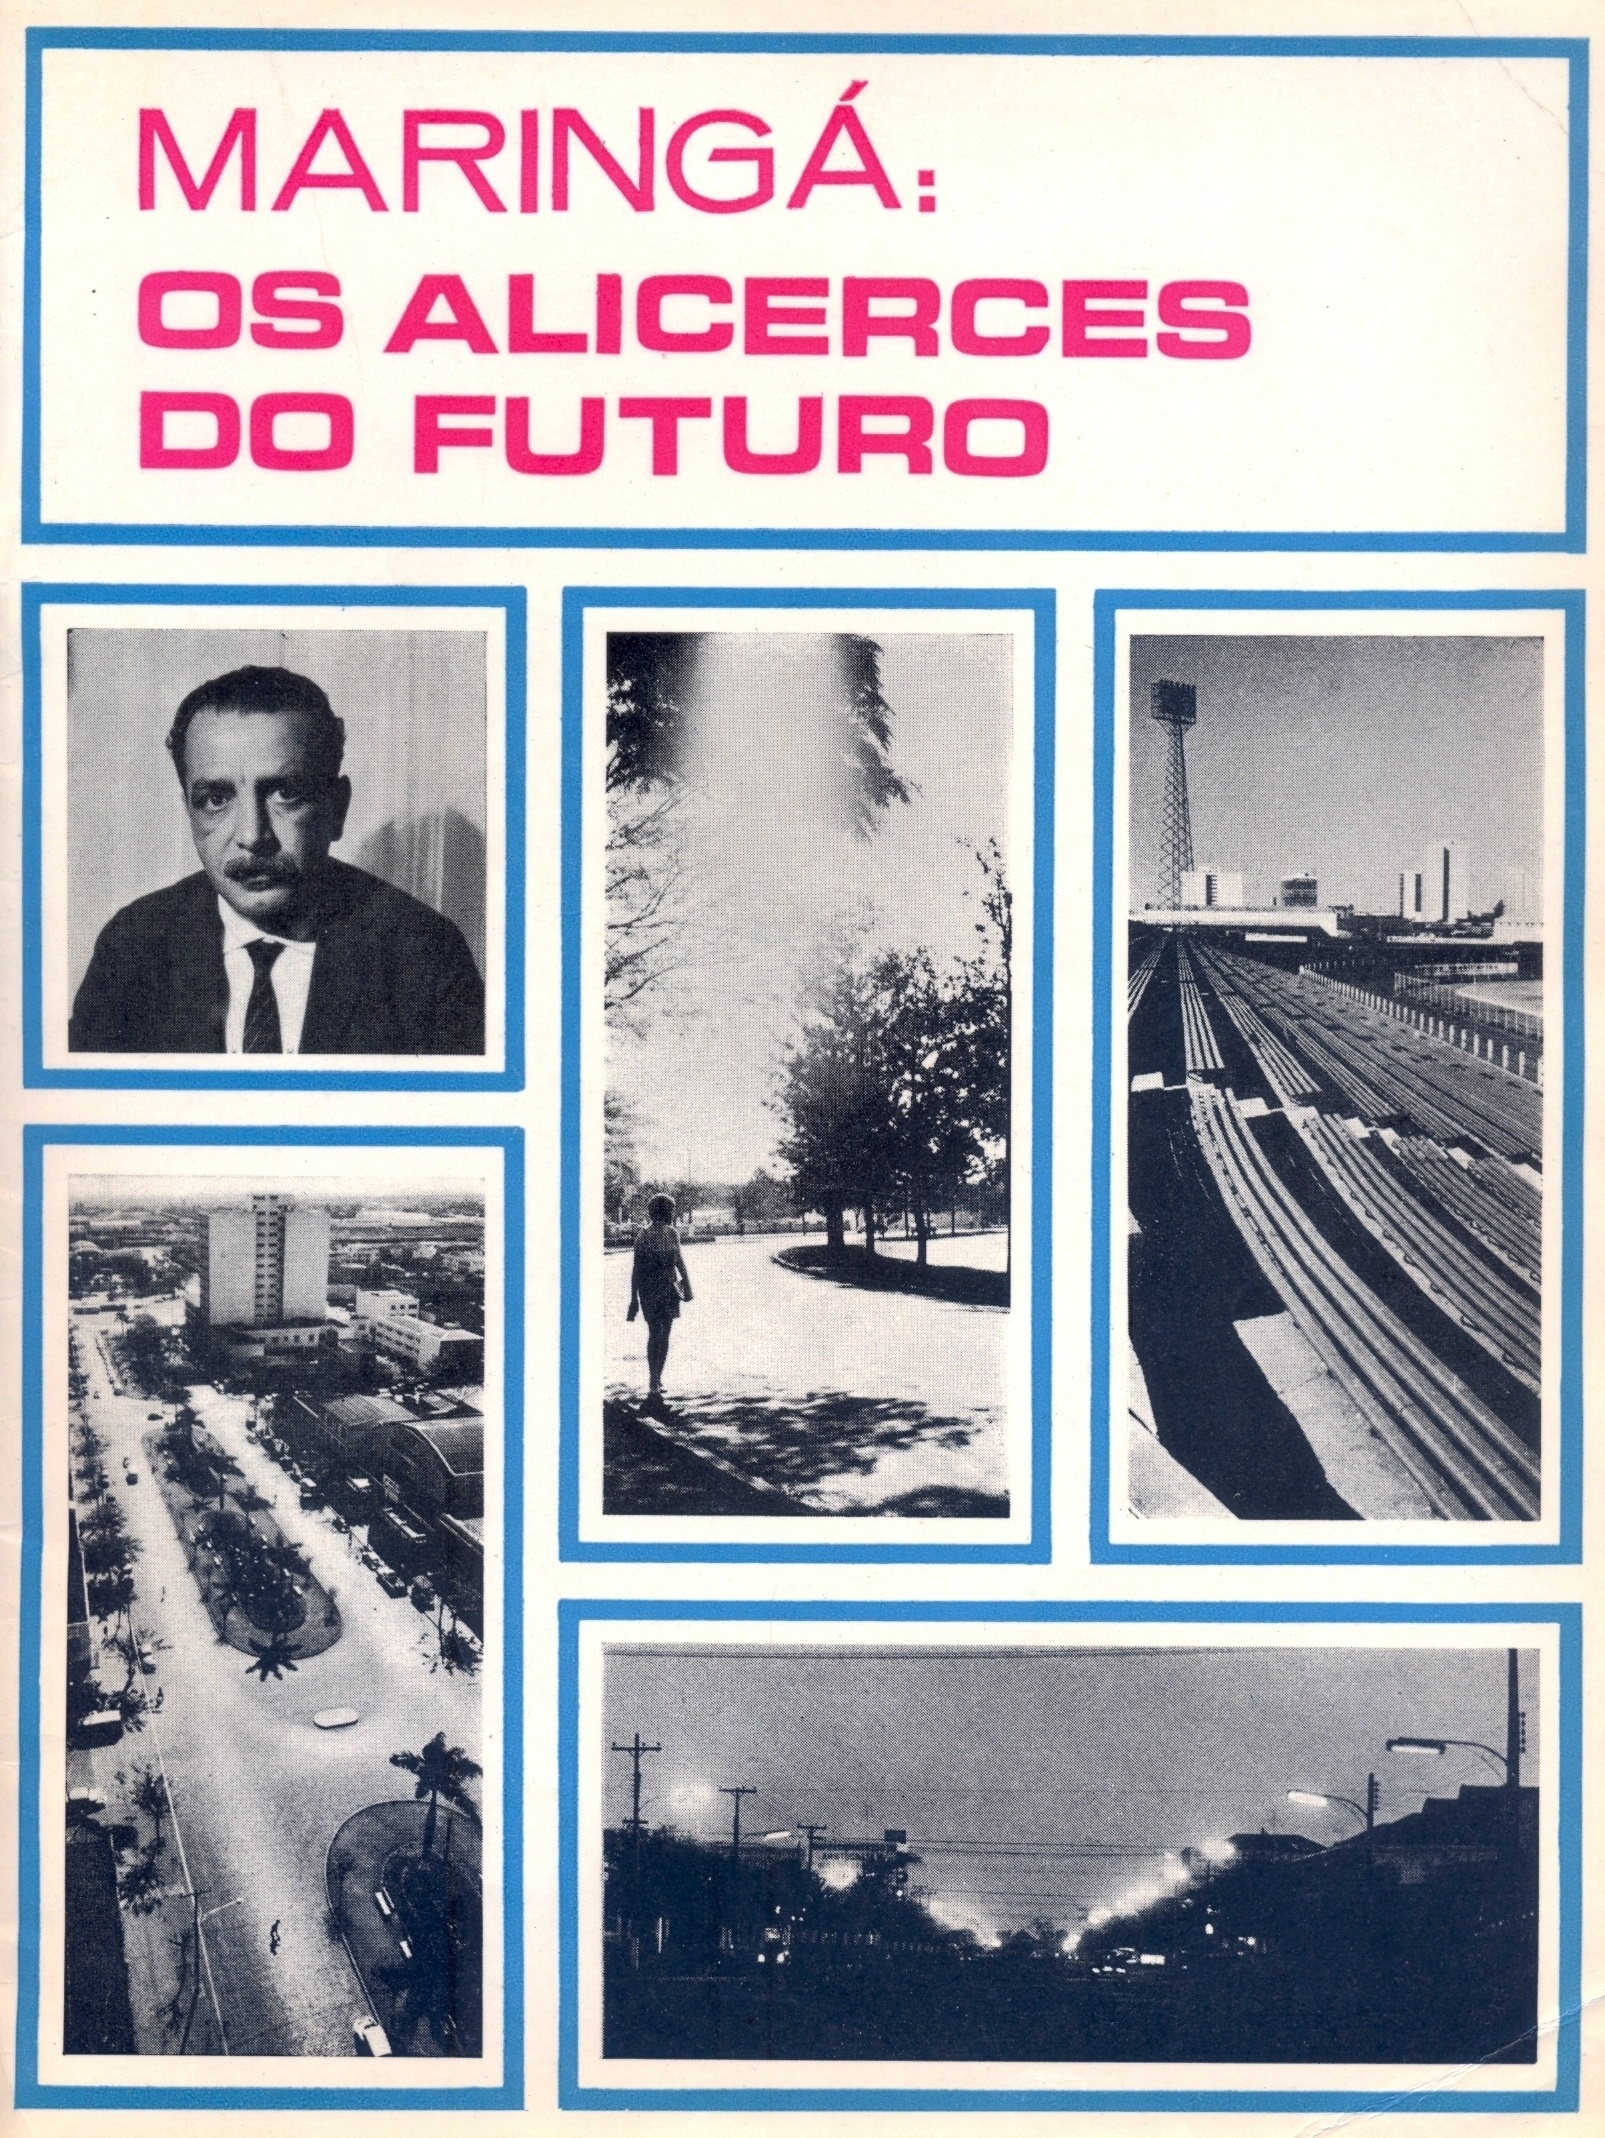 Revista Maringá Alicerces do Futuro, de 1968